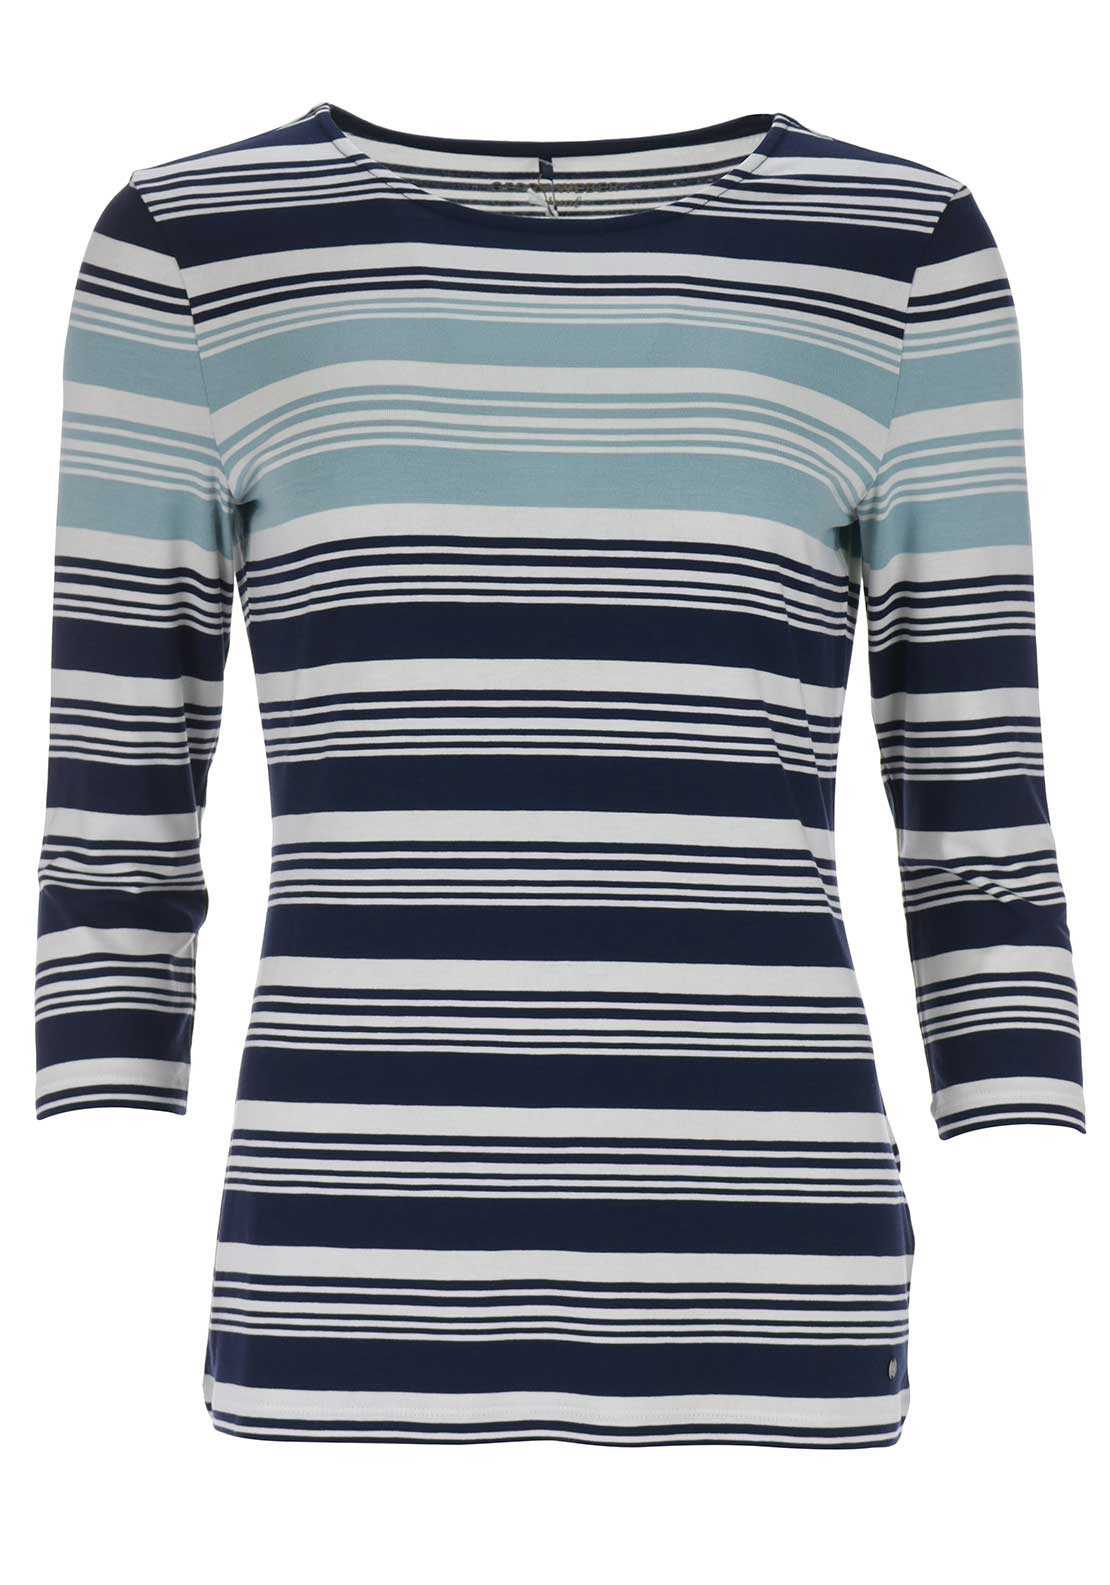 Gerry Weber Striped Cropped Sleeve Top, Navy